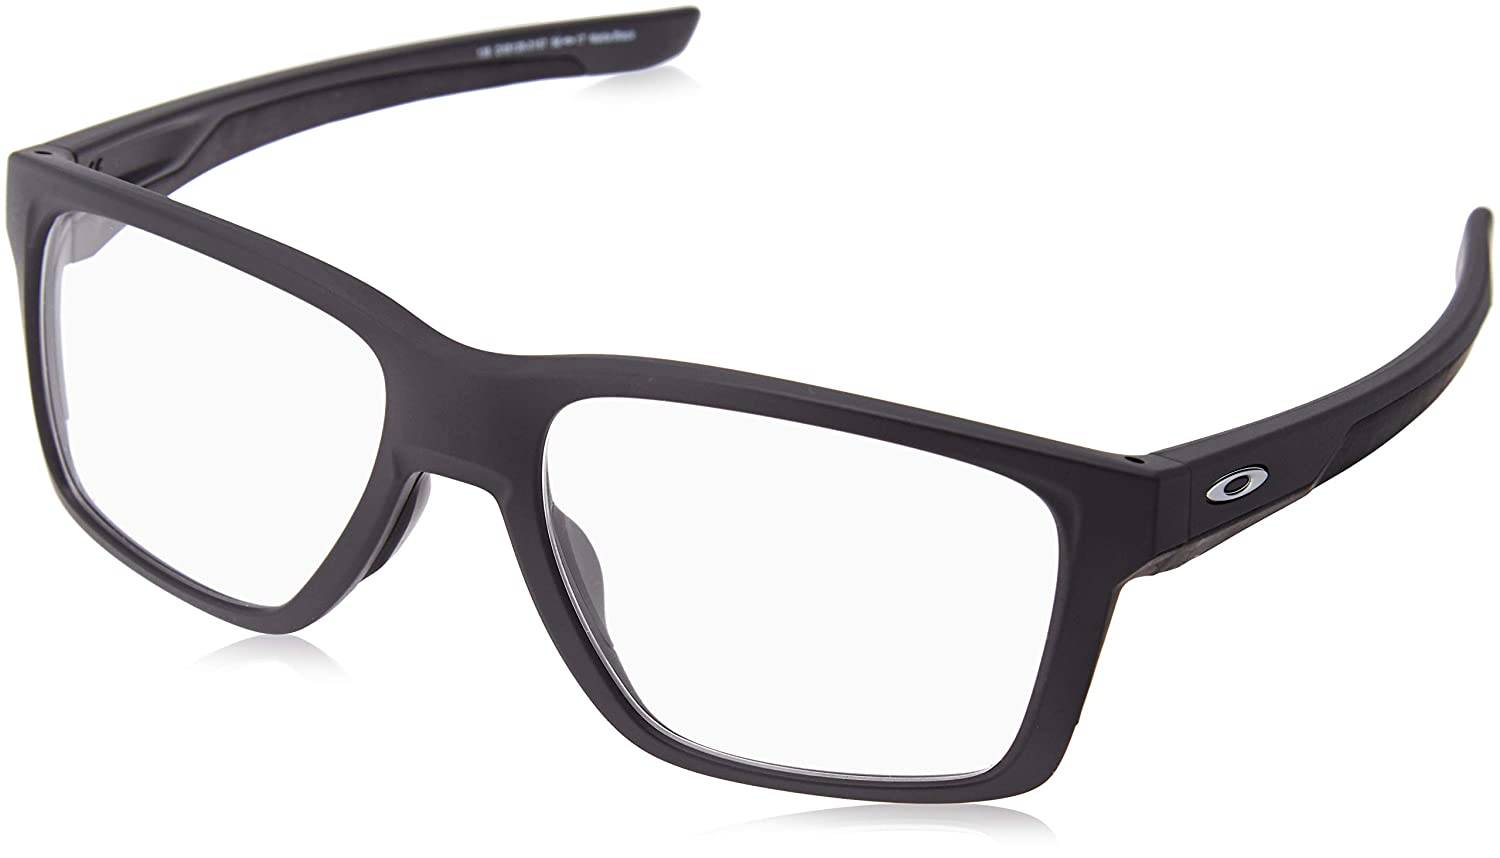 a467cd9b257 OAKLEY OX8128 - 812801 MAINLINK MNP Eyeglasses 57mm at Amazon Women s  Clothing store